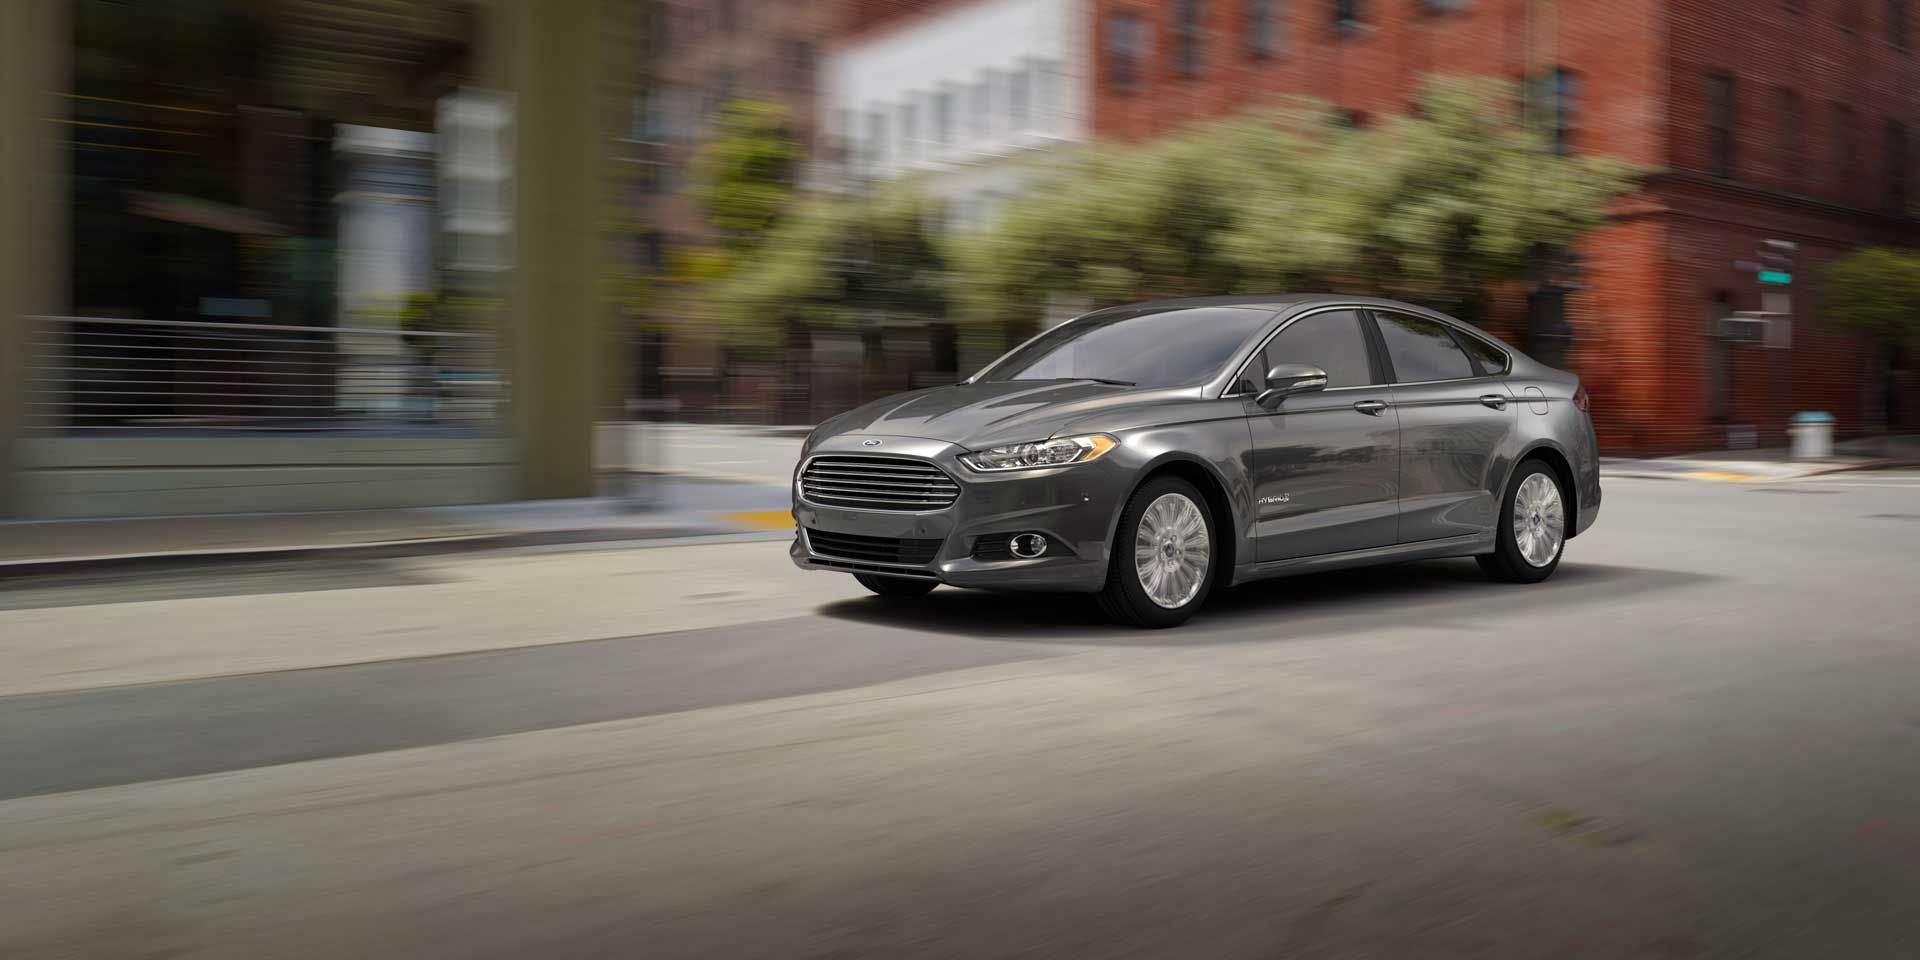 2015 Ford Fusion Vehicles on Display Hybrid car